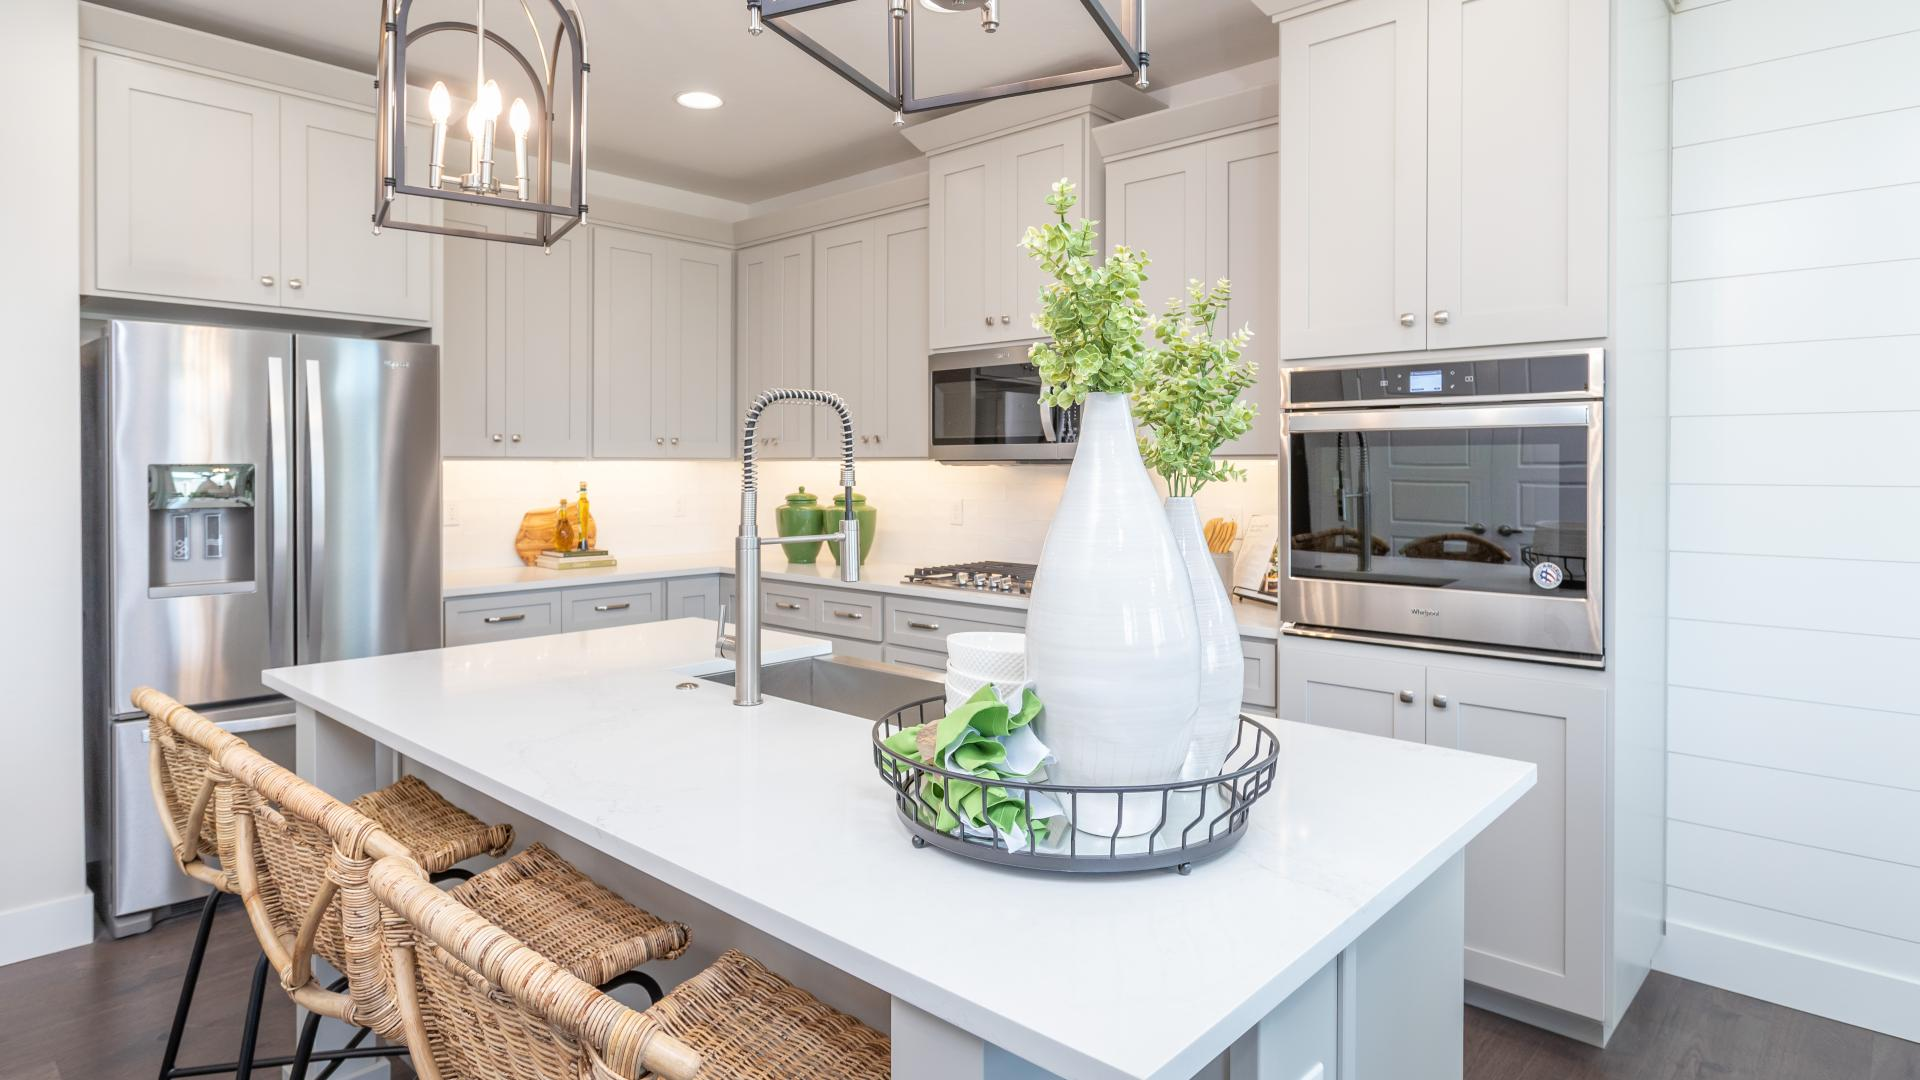 Bright and function kitchens